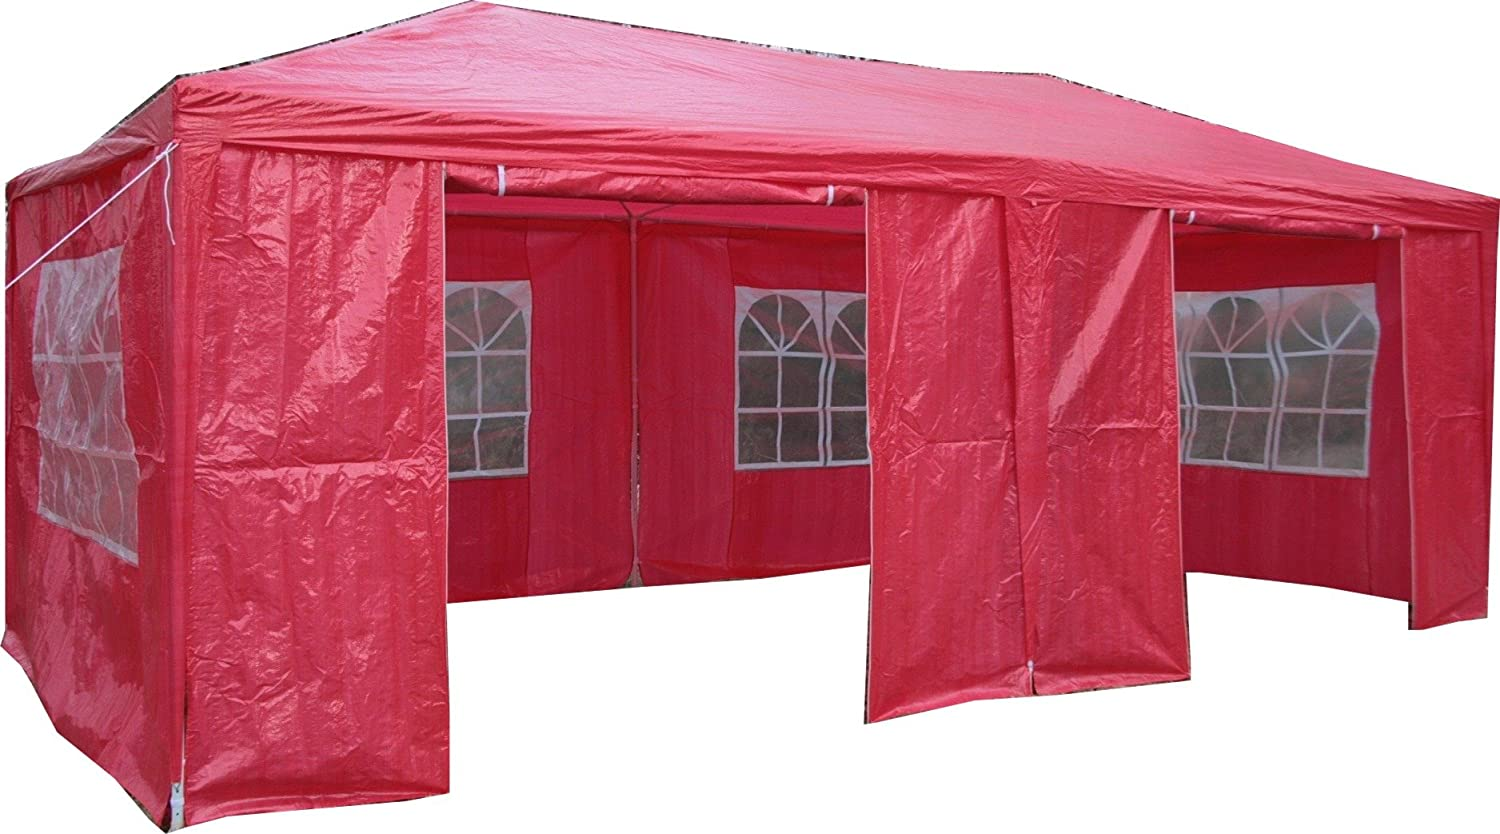 Airwave 3 x 6m Party Tent Gazebo Marquee with 2 x Unique WindBars and Side Panels 120g Waterproof Canopy, Green, 120g ESC Ltd